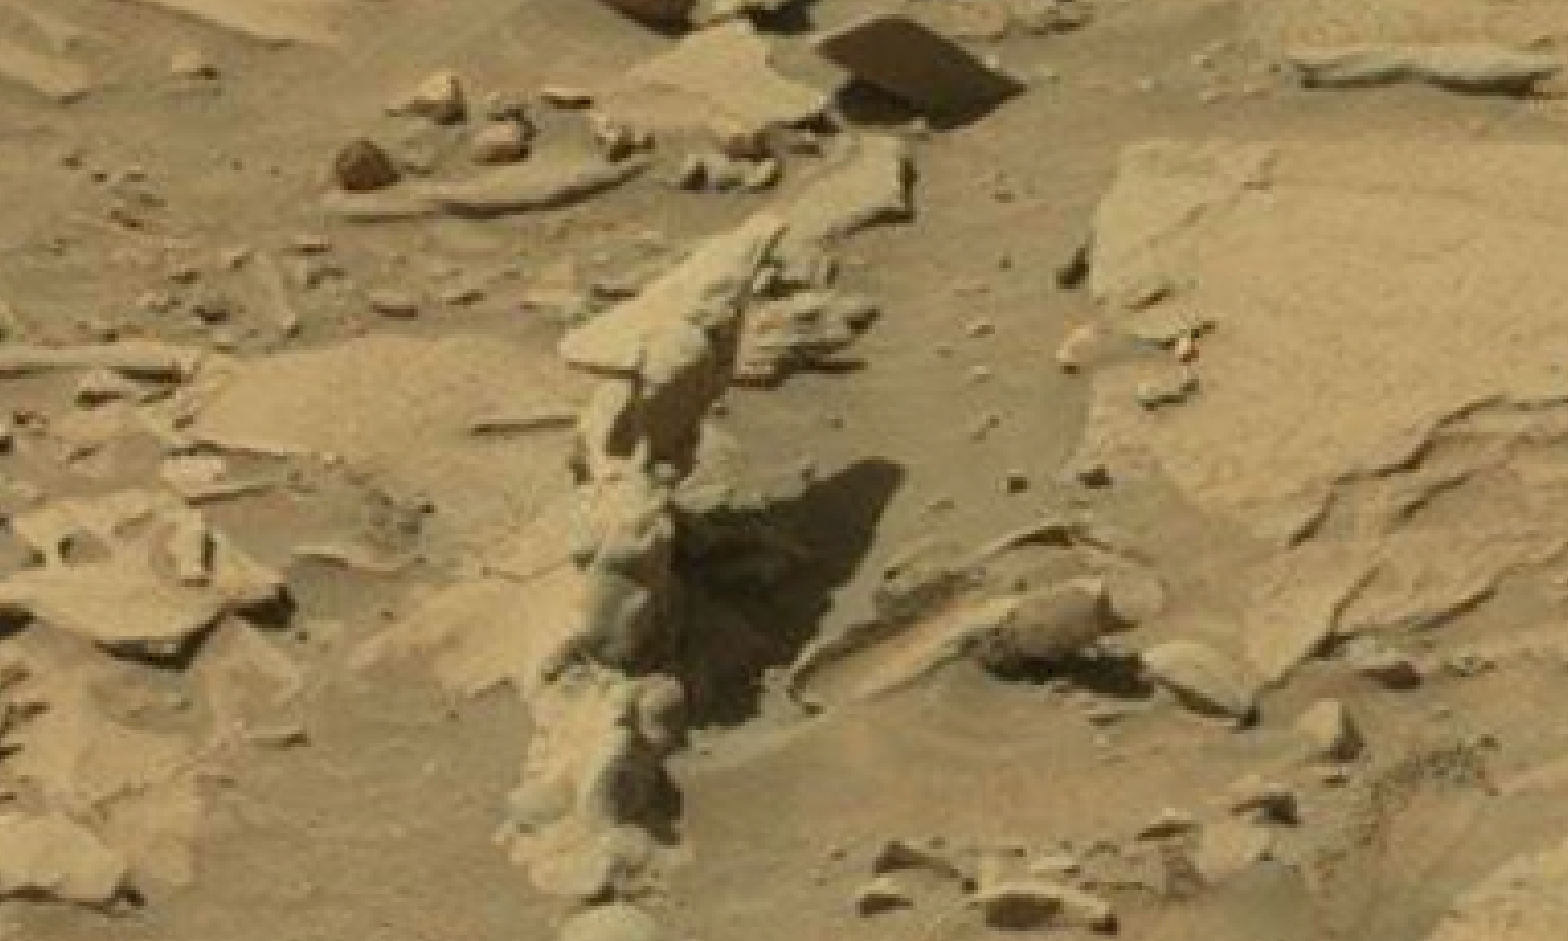 mars sol 1296 anomaly-artifacts 16 was life on mars